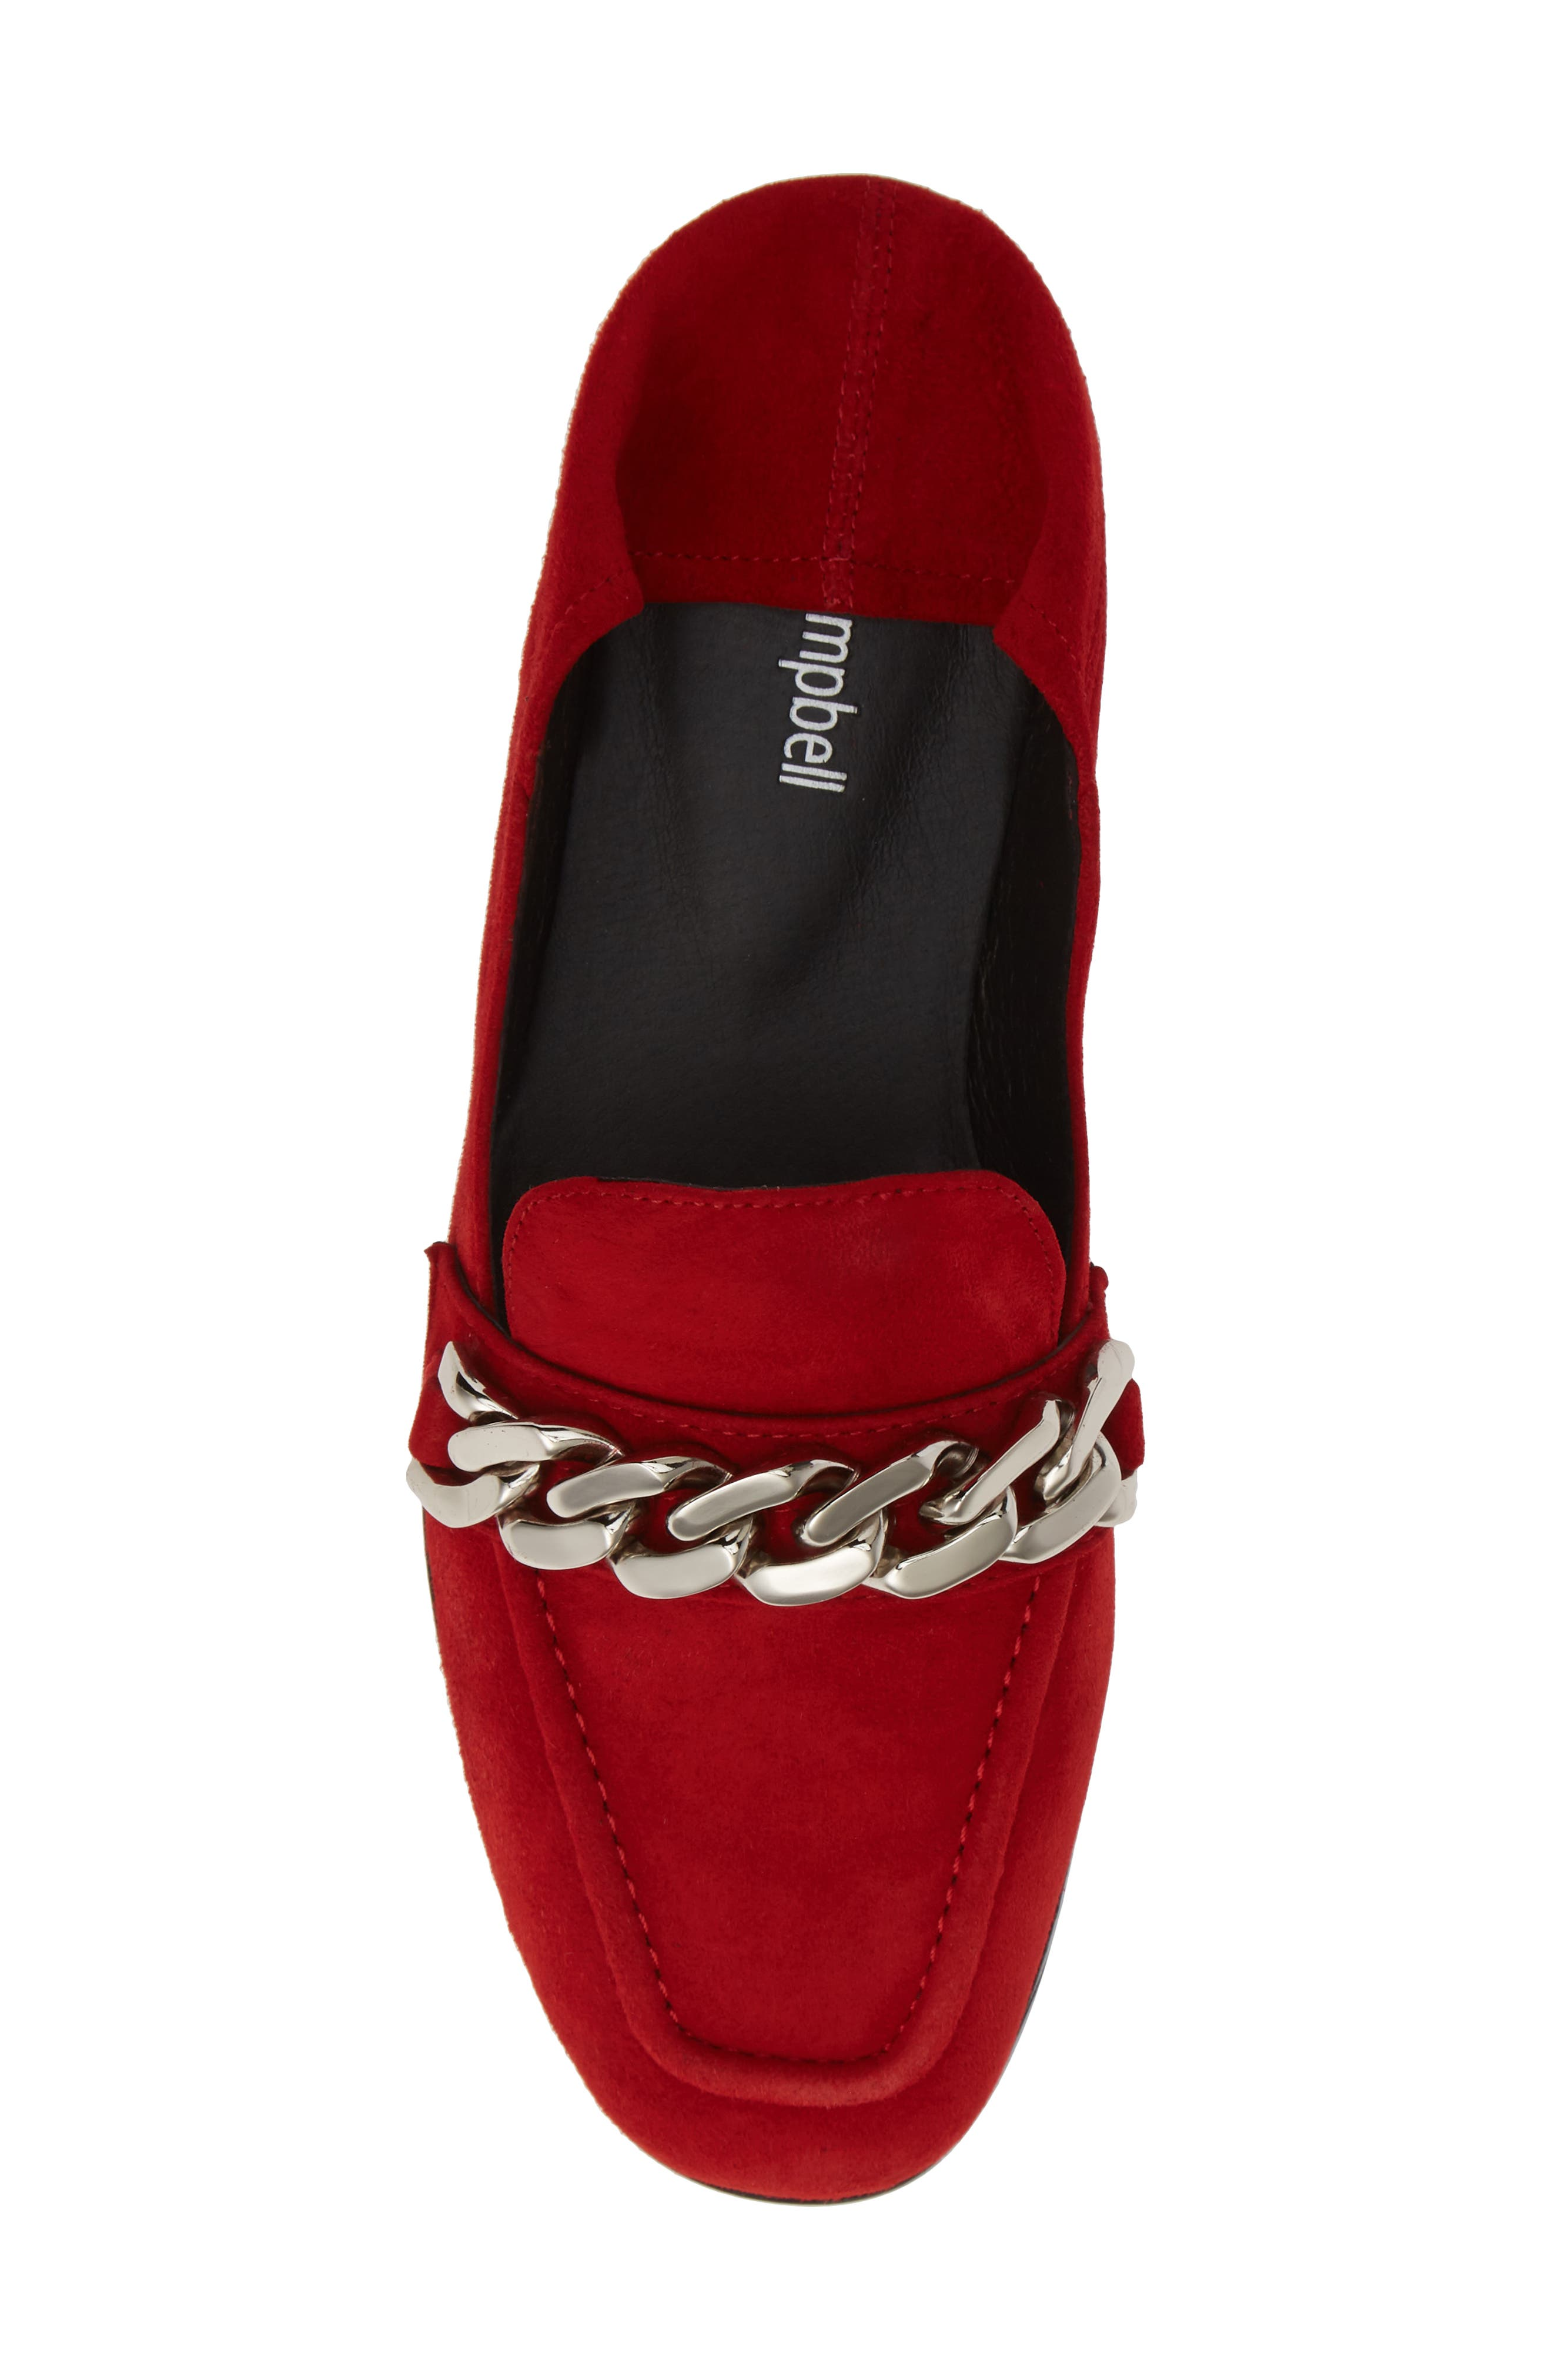 Jesse Convertible Heel Loafer,                             Alternate thumbnail 6, color,                             RED SUEDE SILVER